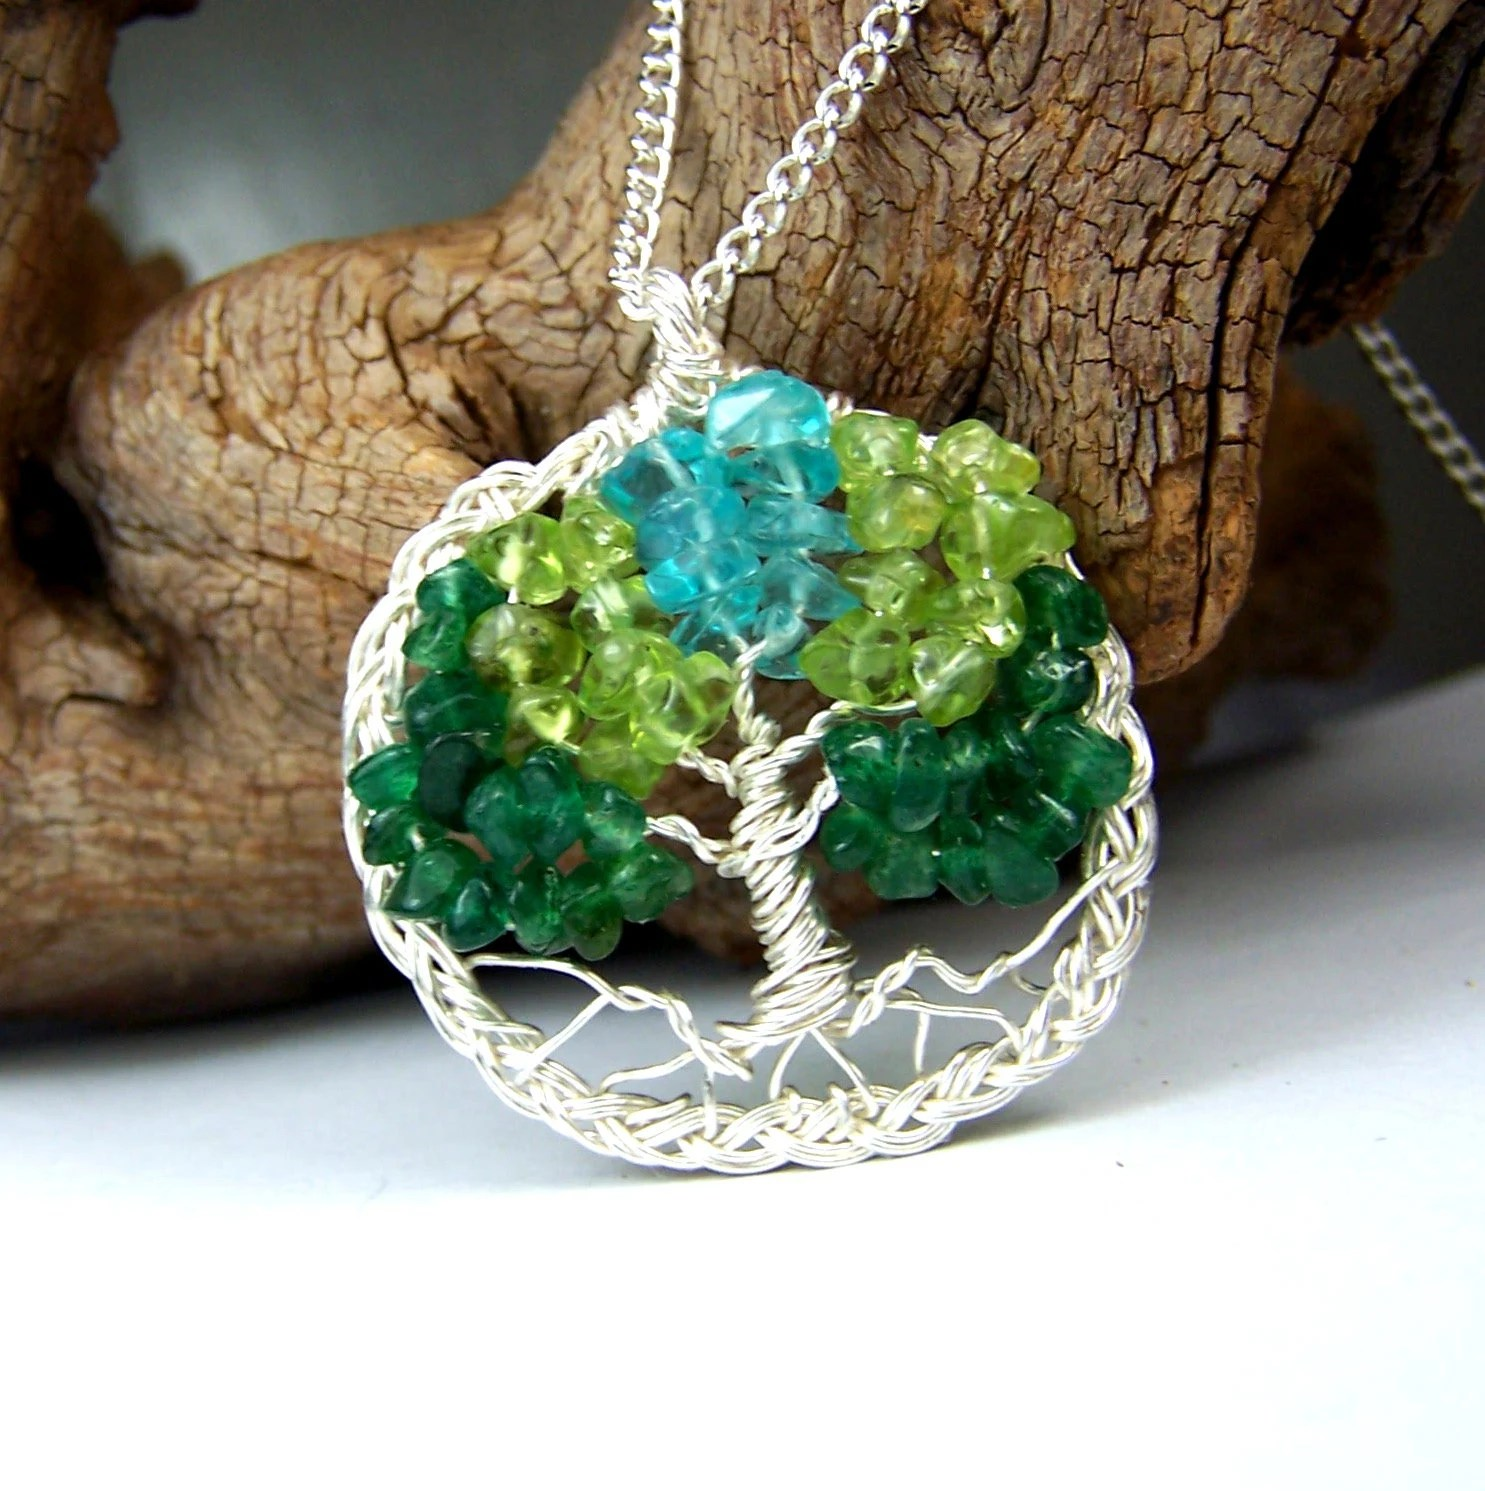 Celtic Knot Tree of Life necklace pendant in silver with chain - Emerald Green Aventurine - Peridot - Aquamarine blue - circle braided braid - mandalarain